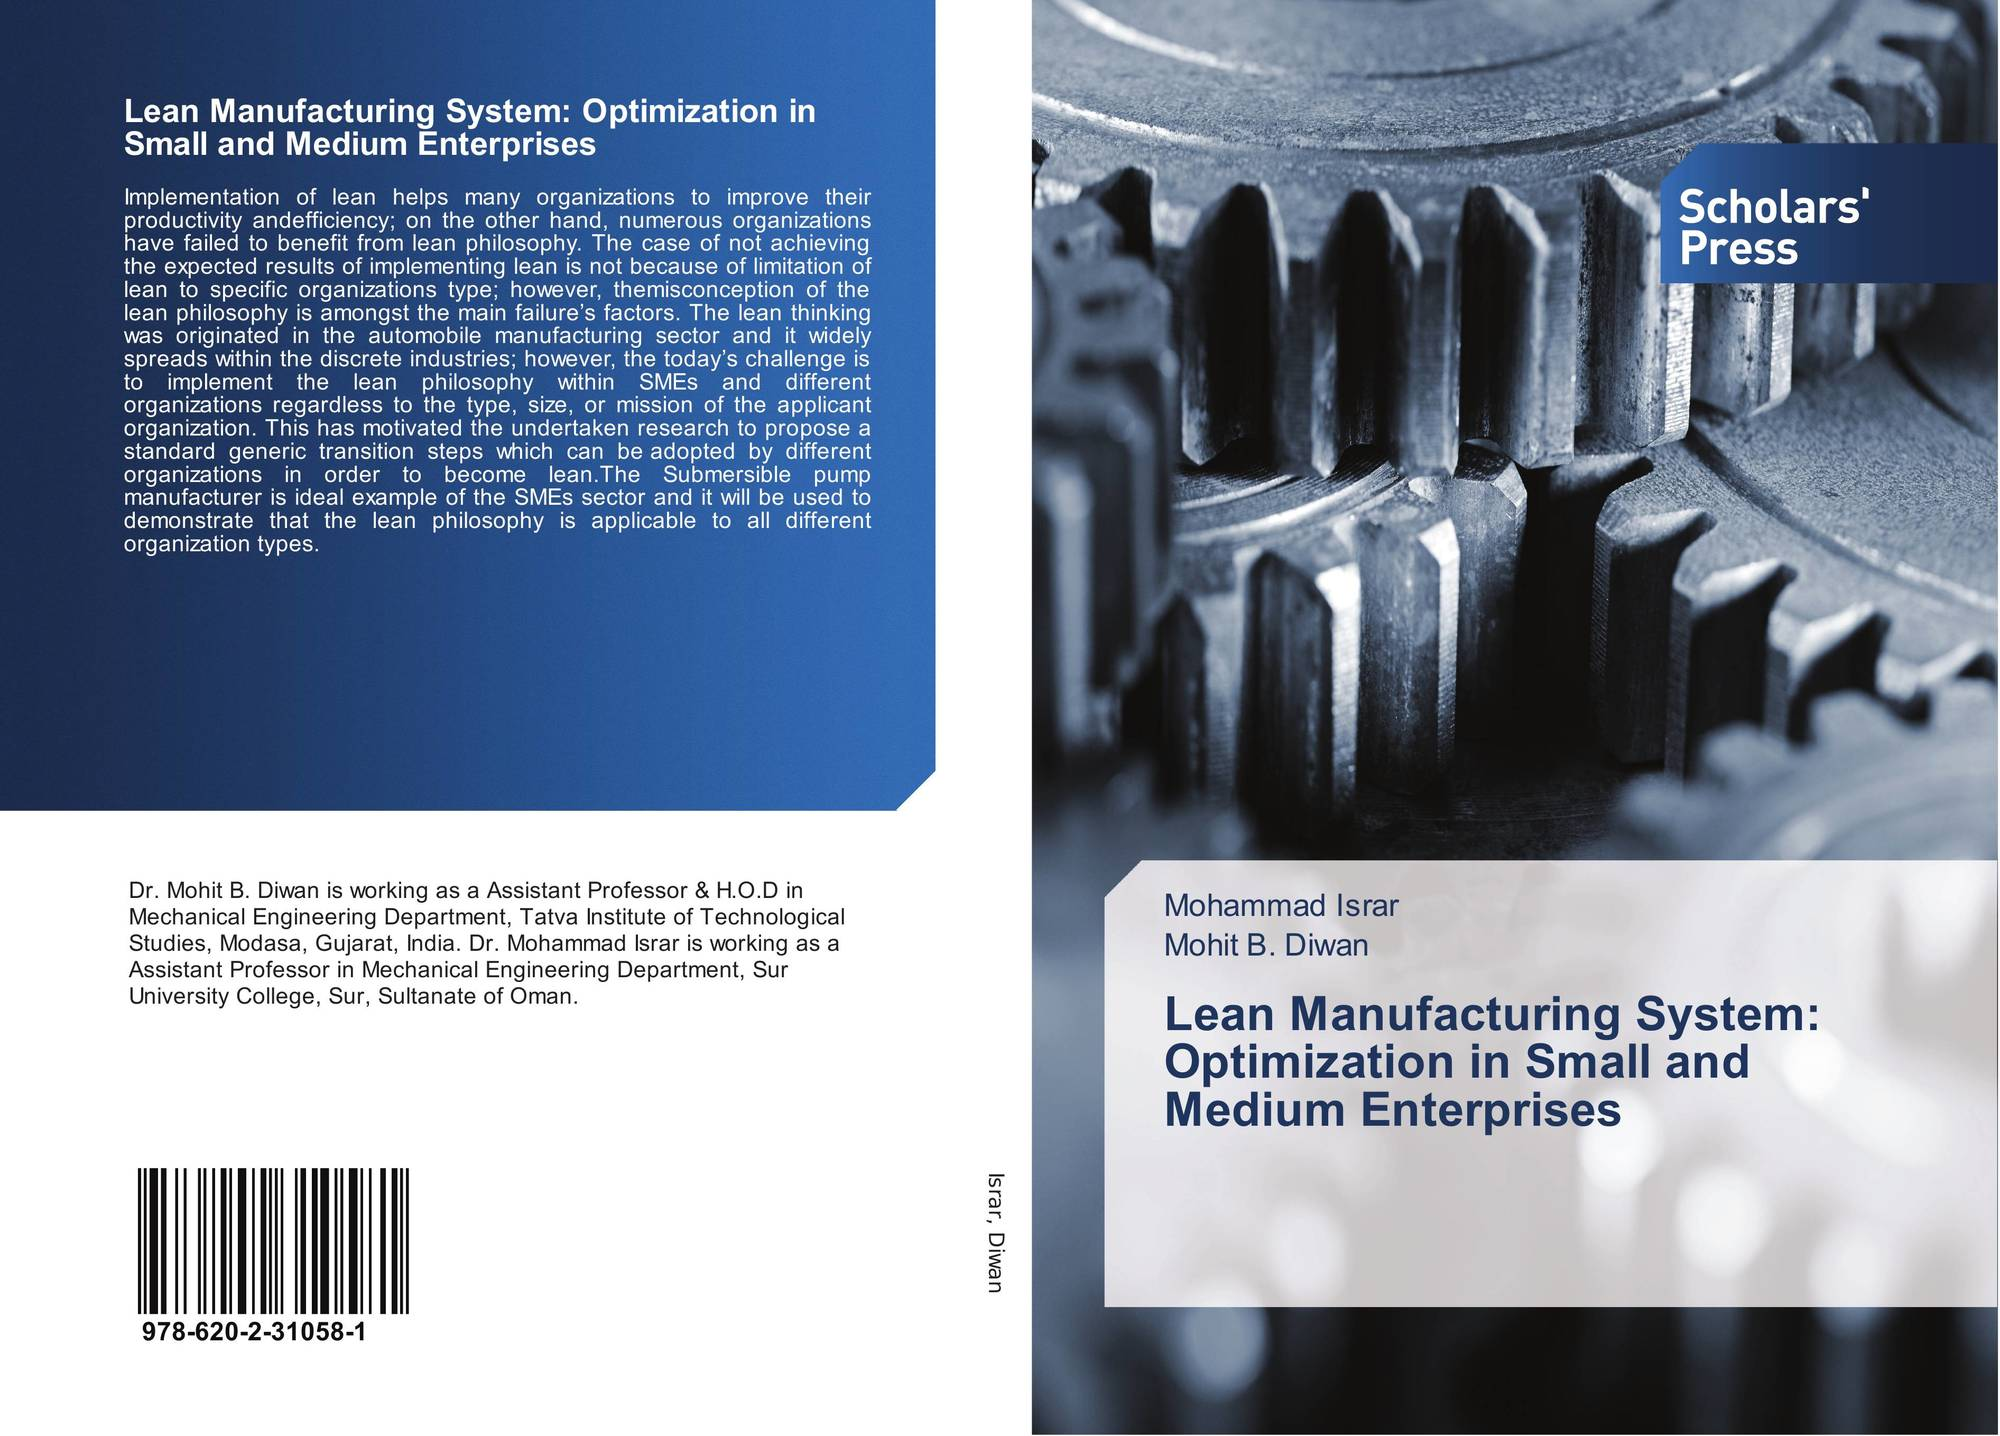 Lean Manufacturing System: Optimization in Small and Medium